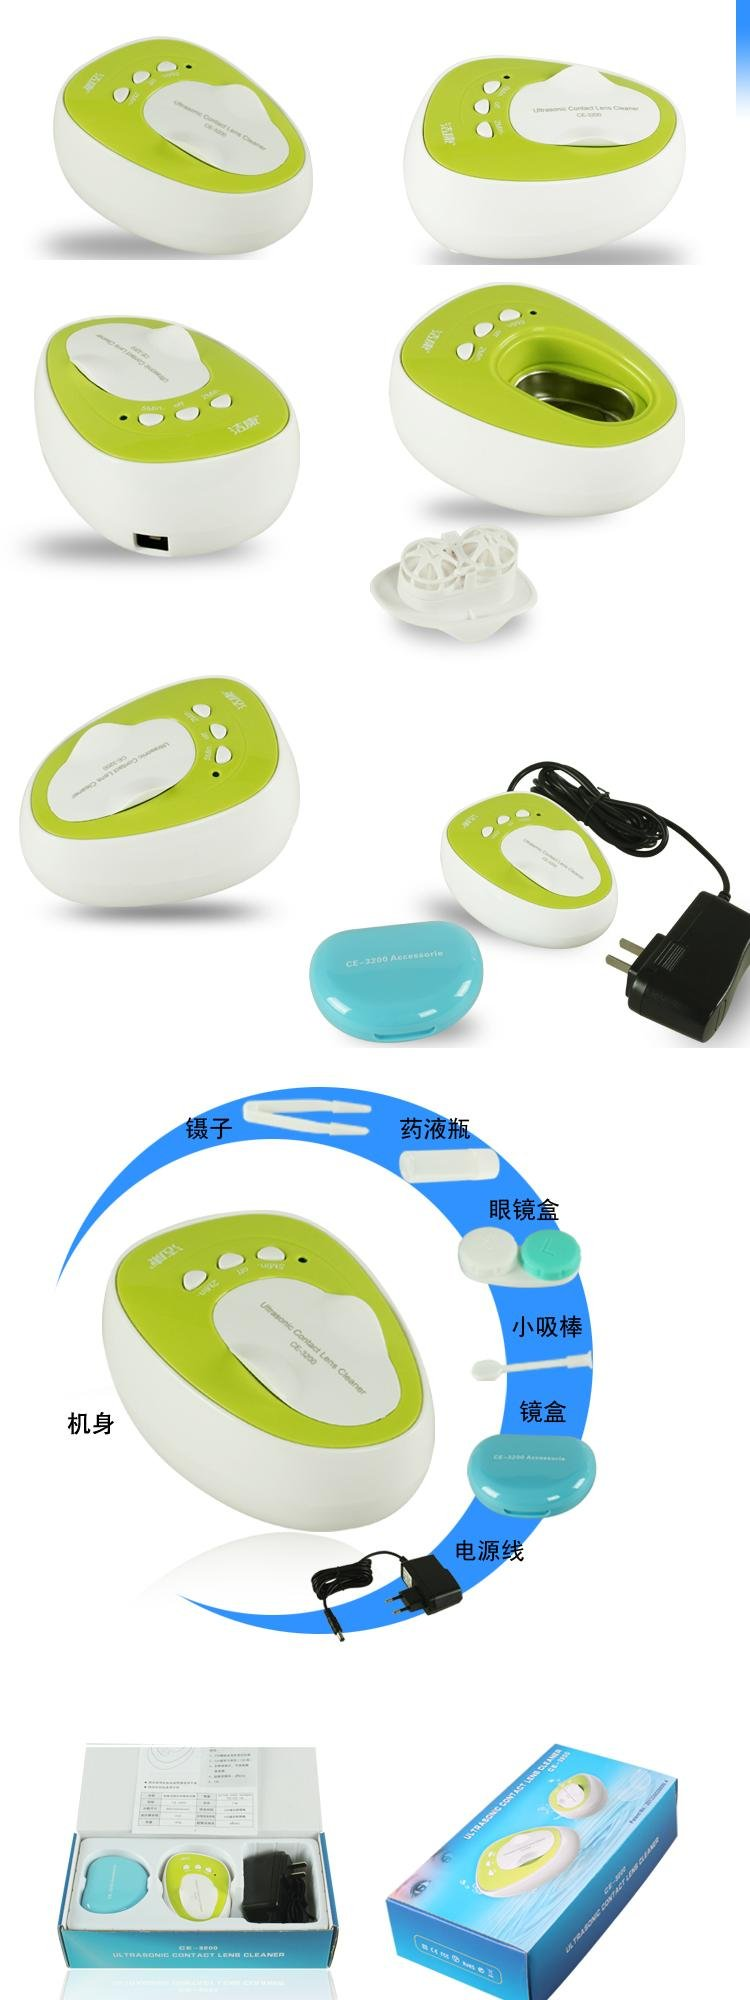 Kowellsonic CE-3200 Mini Ultrasonic Contact Lens Cleaner Kit Daily Care Fast Cleaning New---Green